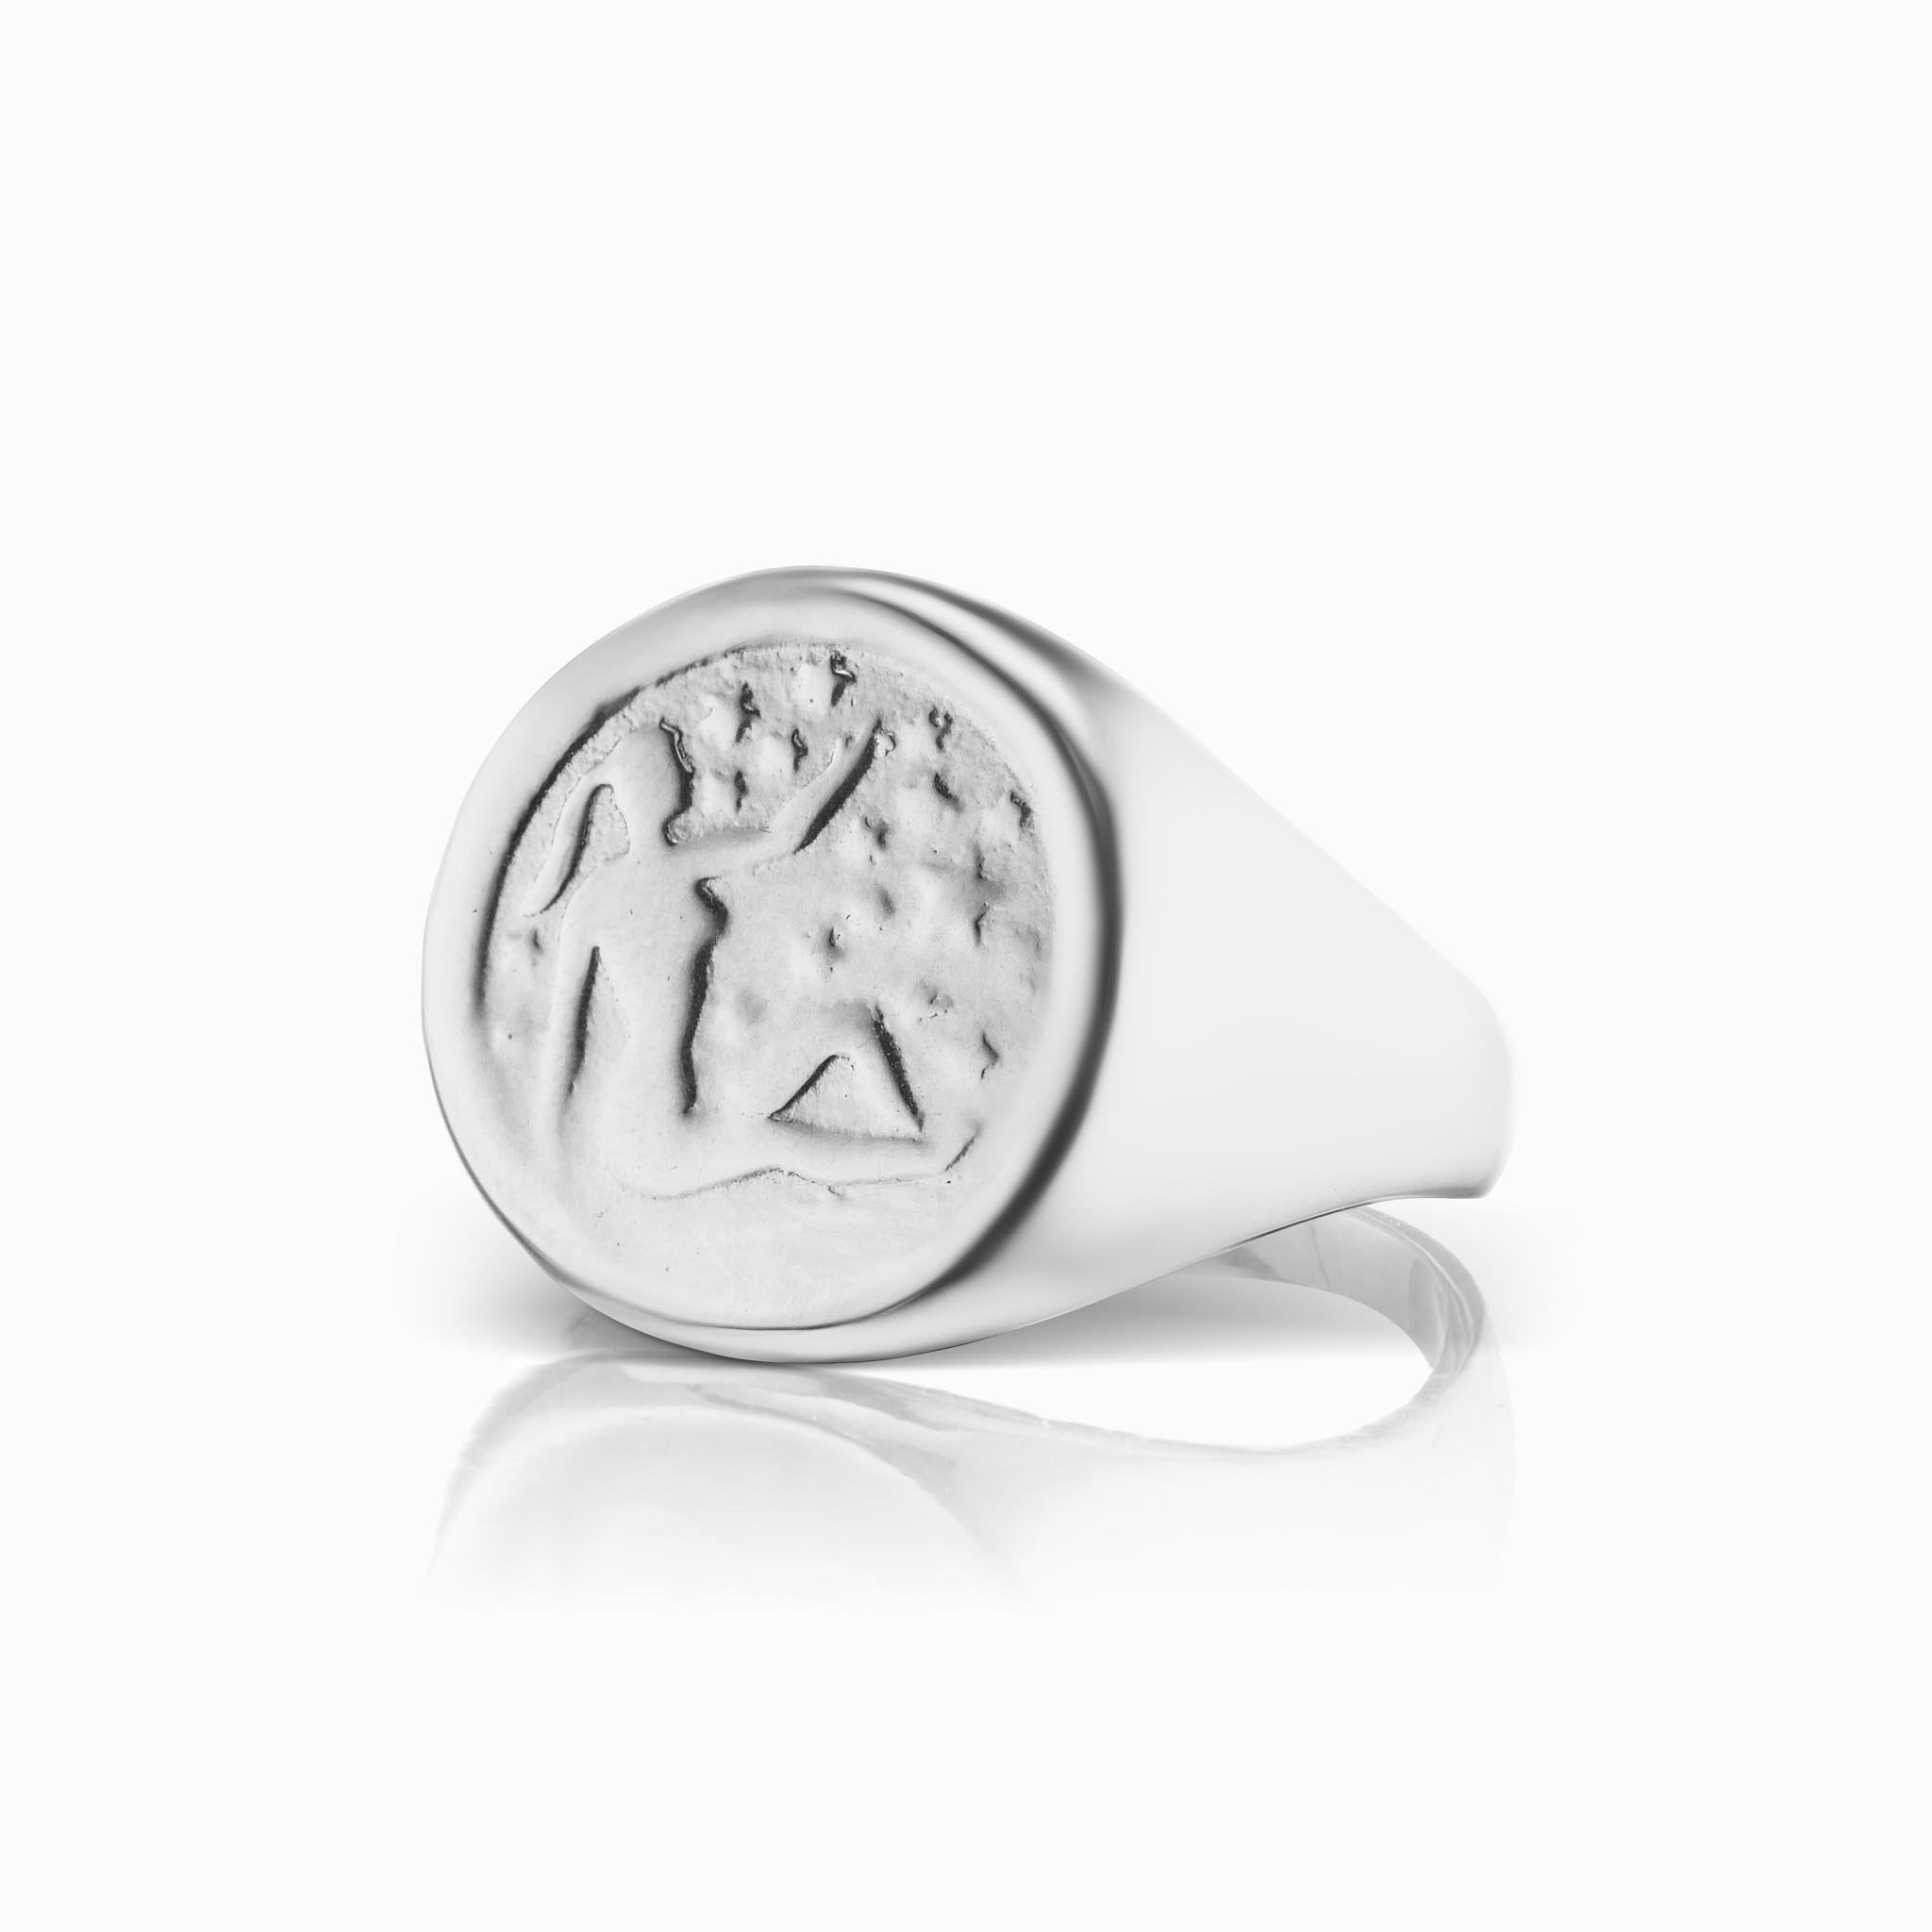 Zodiac Signet Ring - Virgo